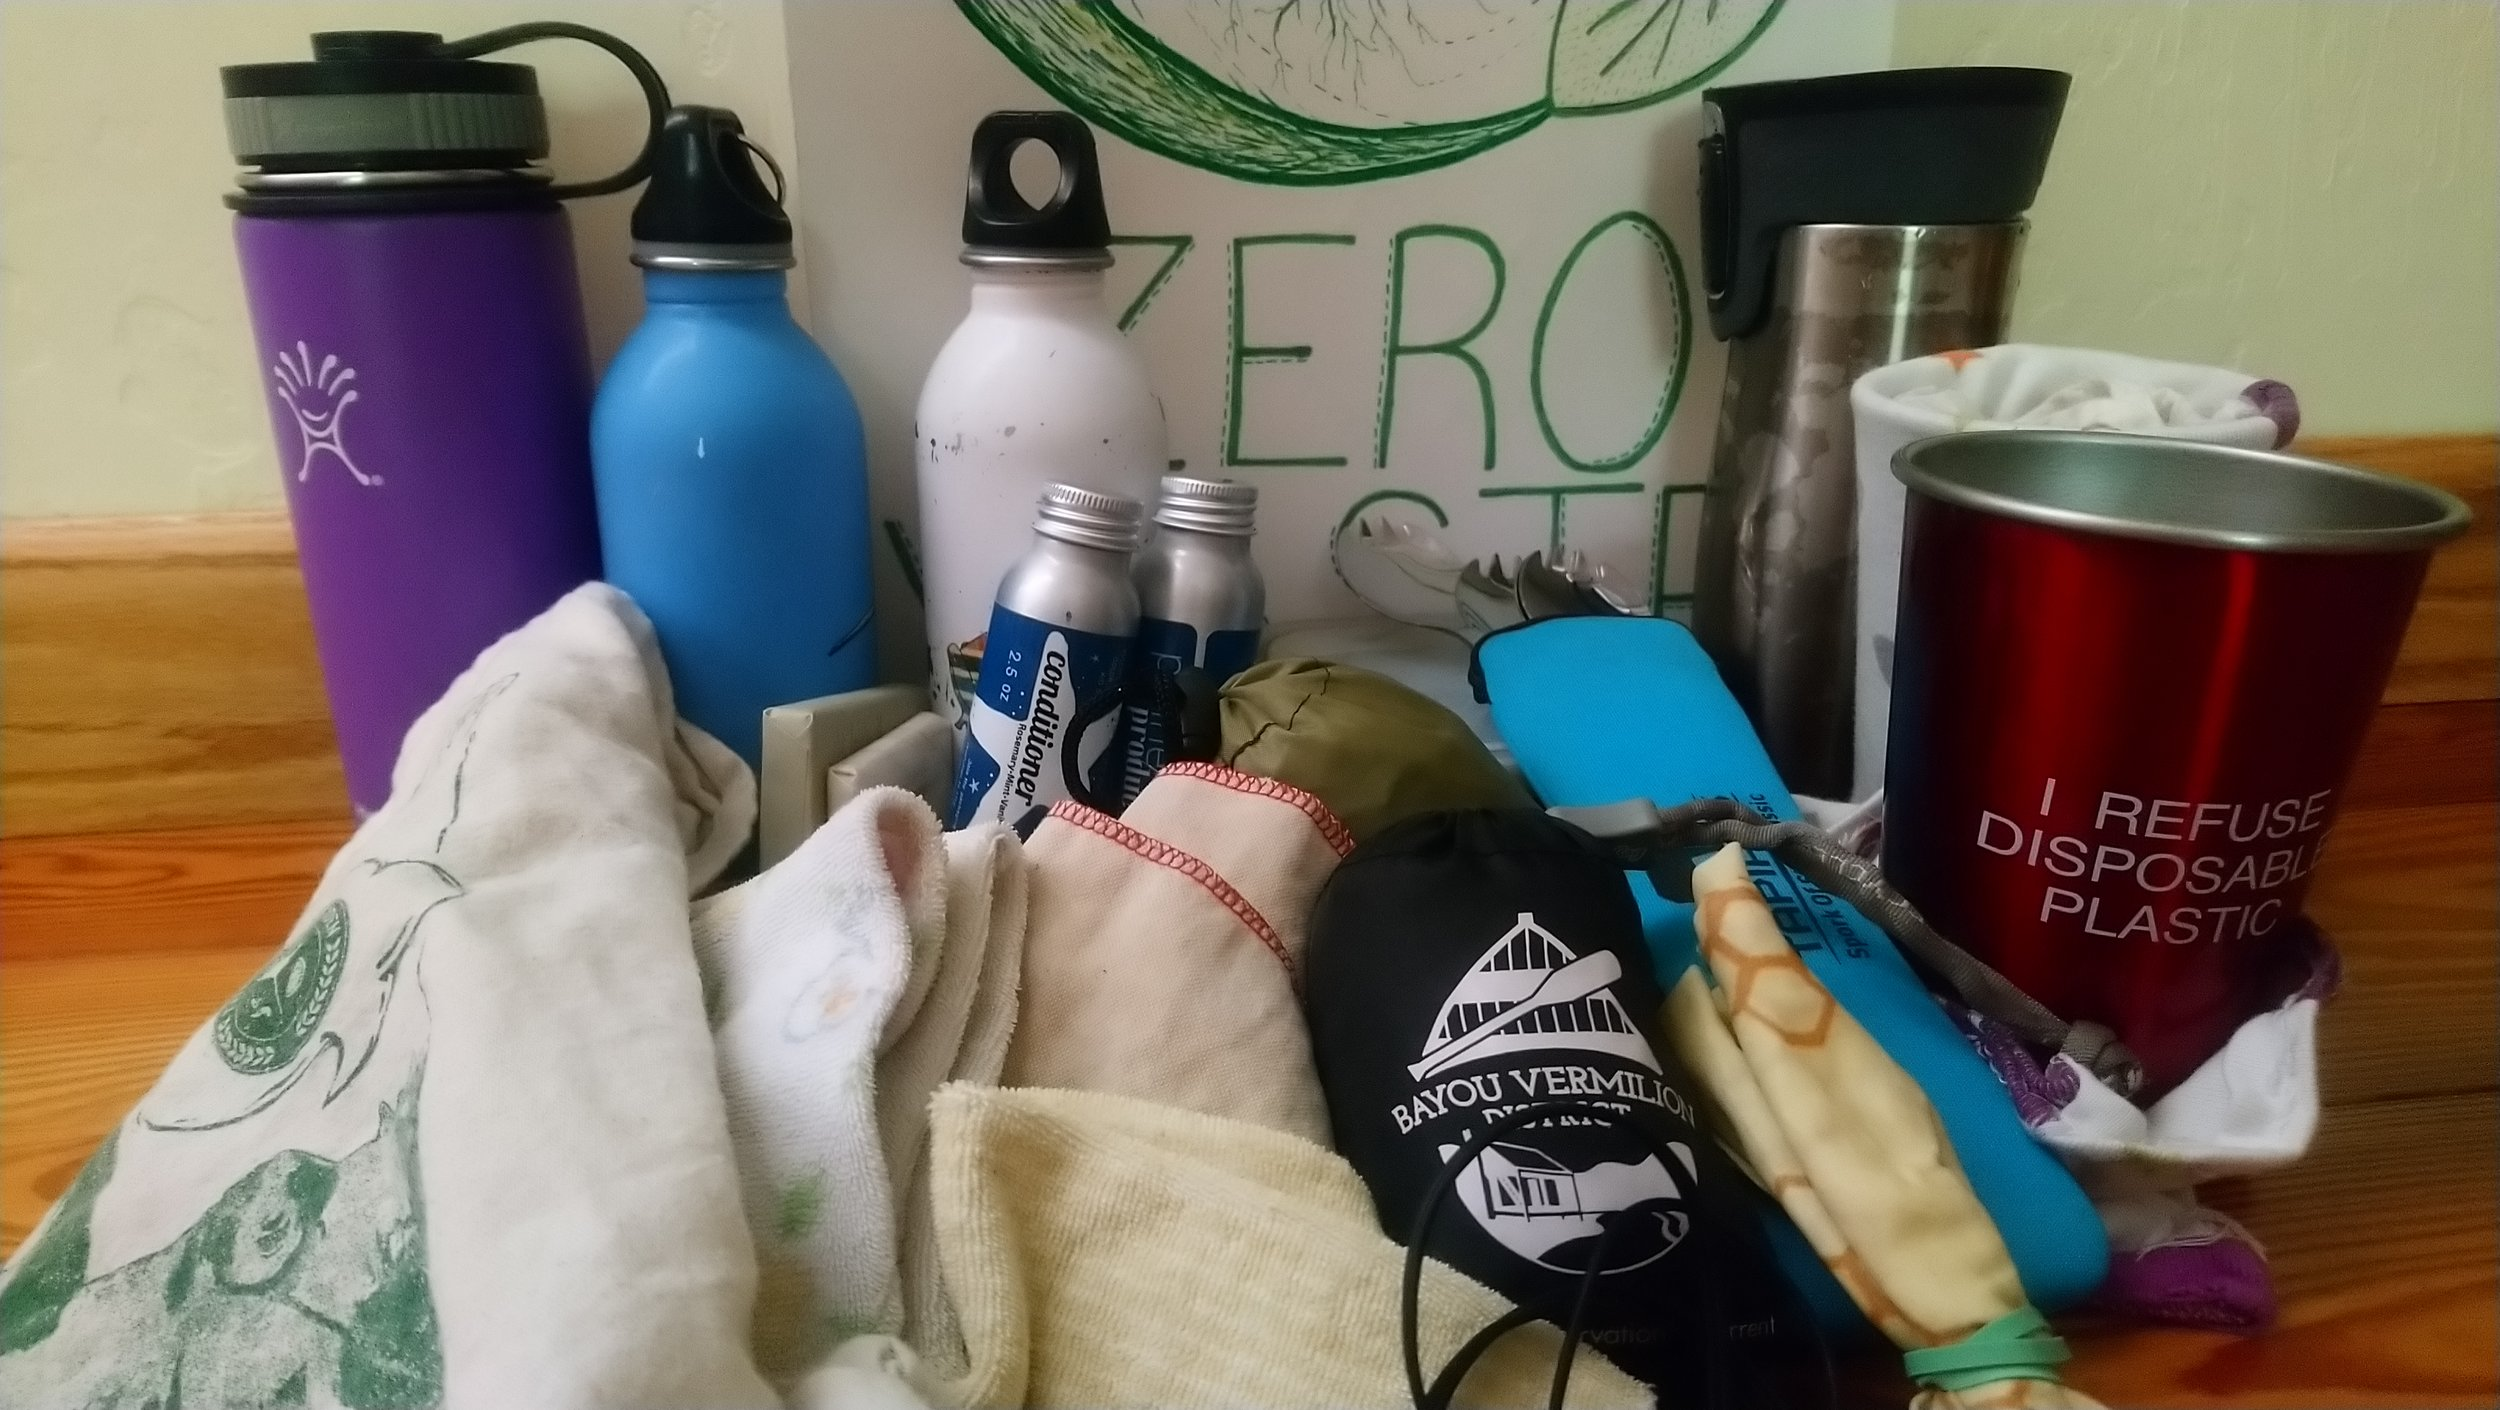 All our Zero Waste items we packed for our trip (not pictured is my husband's Klean Kanteen all metal water bottle)